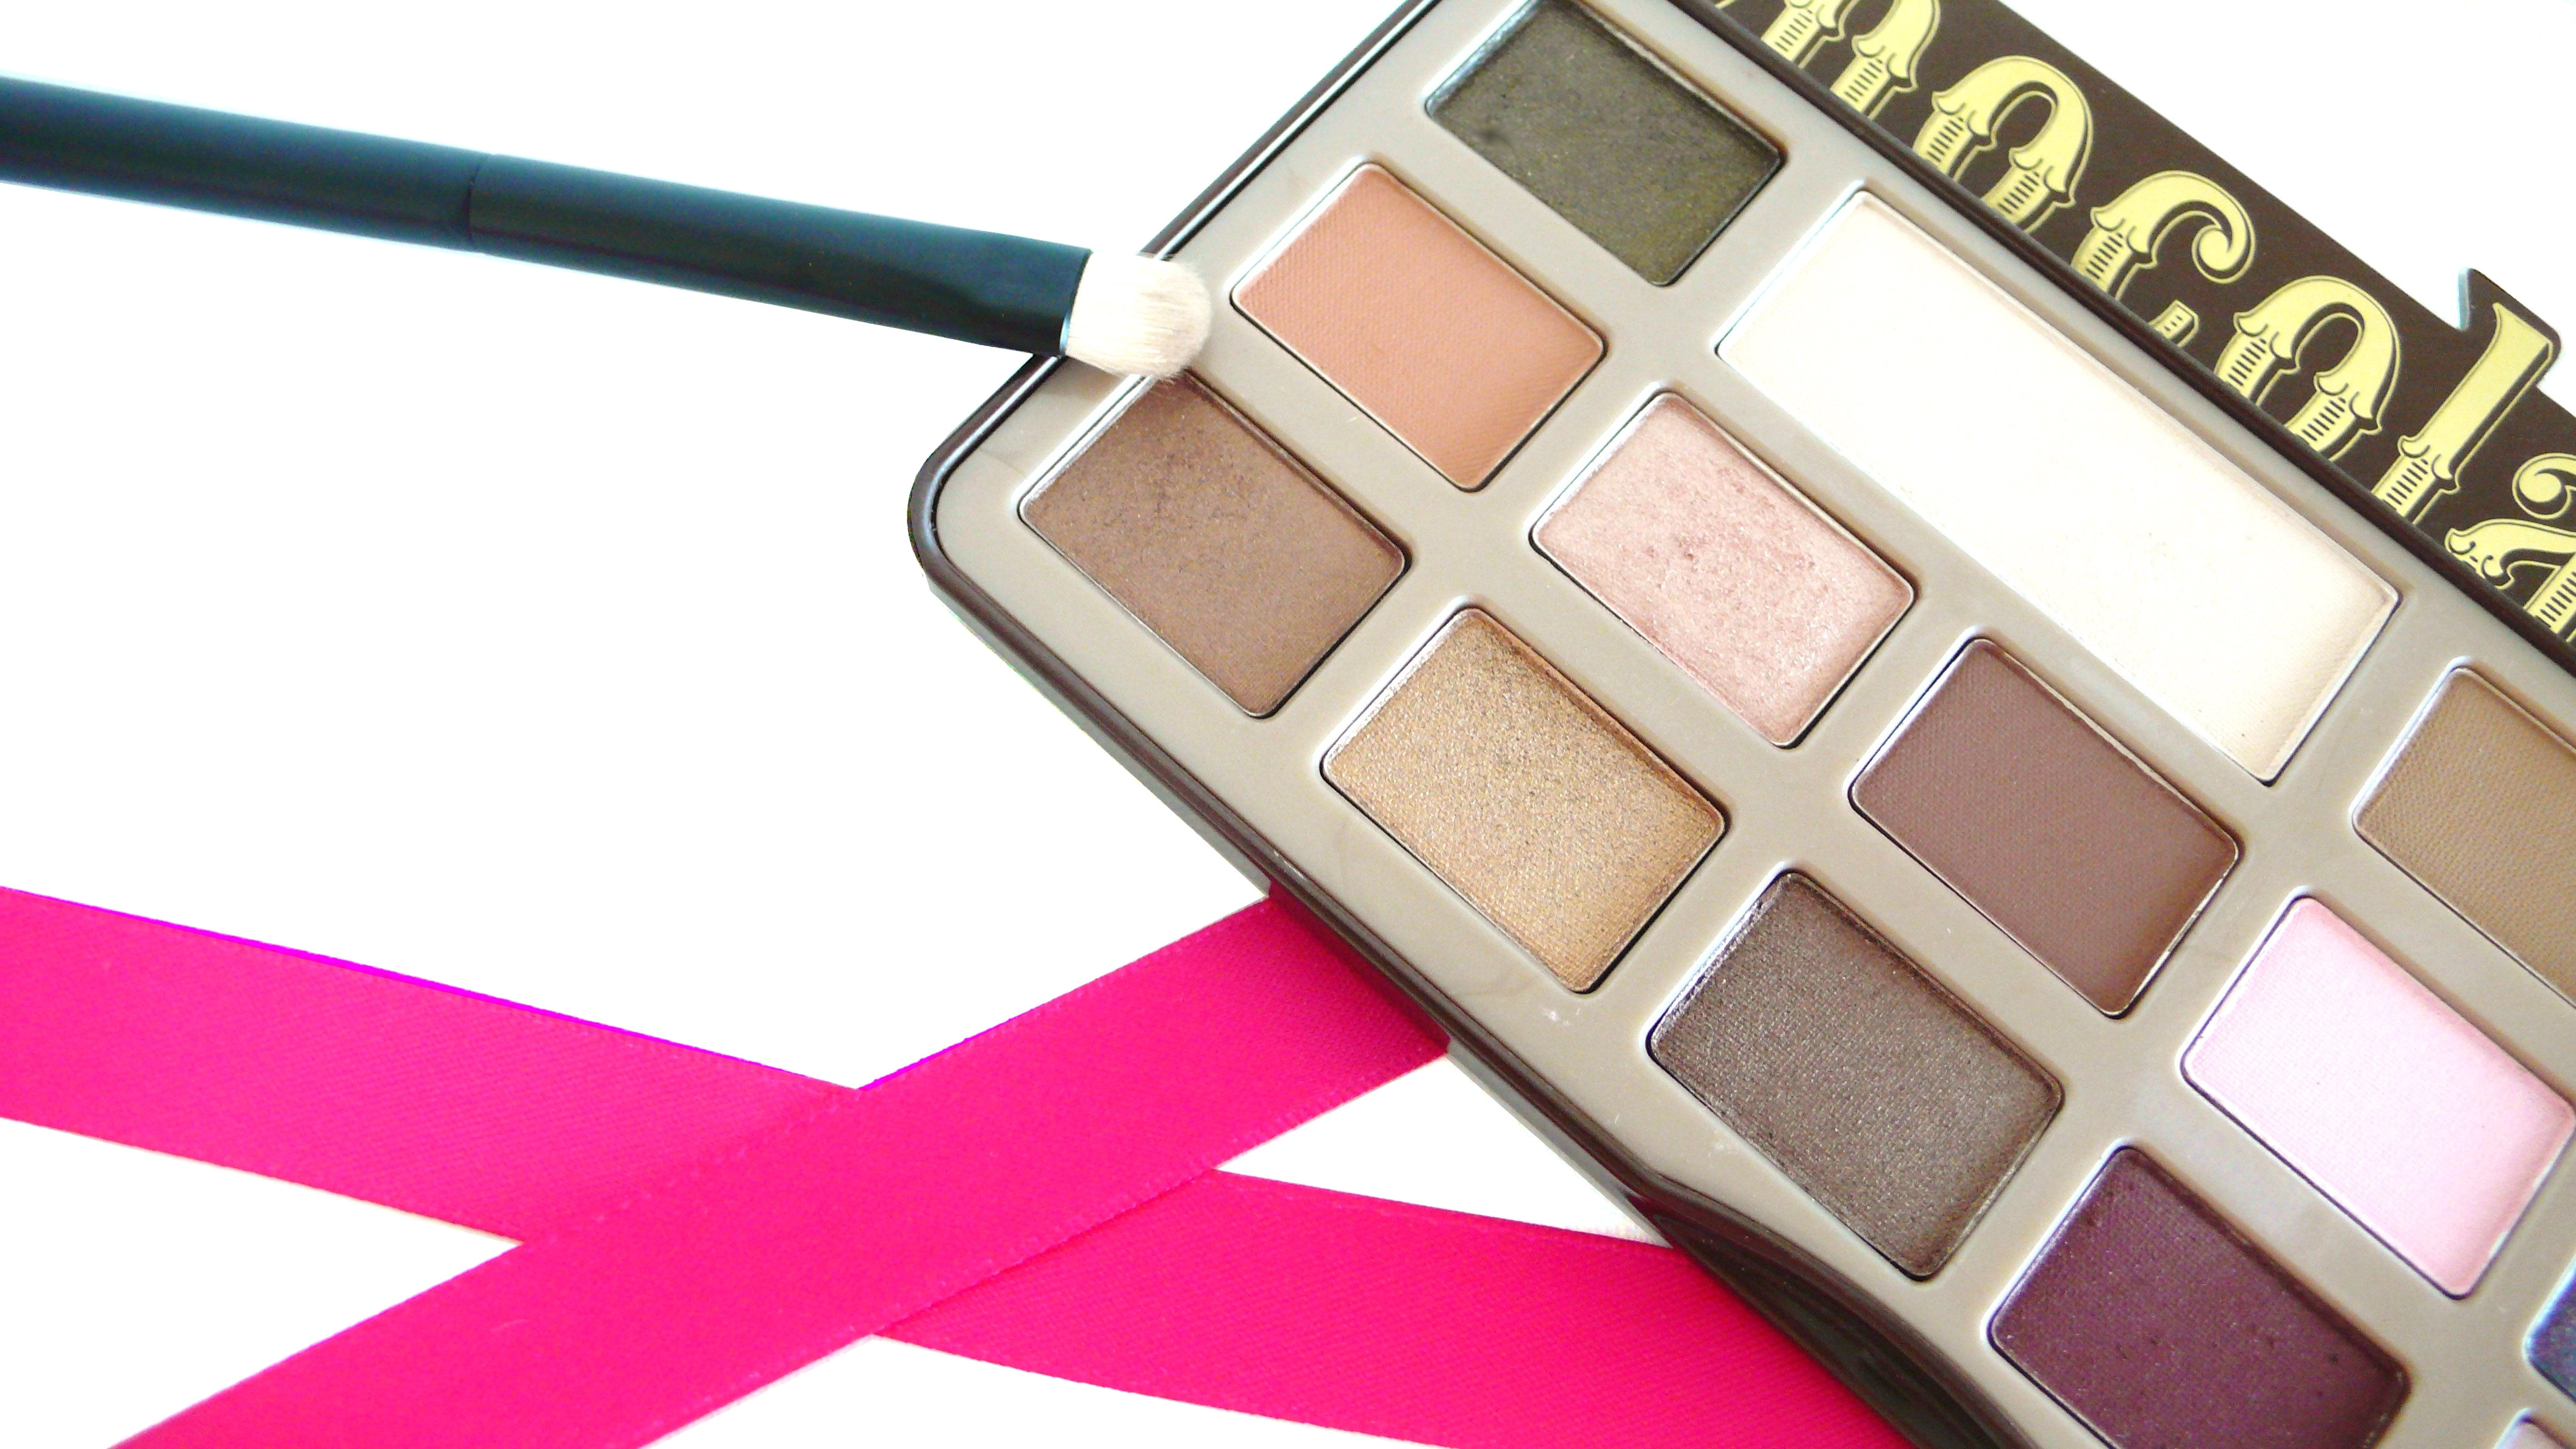 indispensables-makeup-chocolate-bar-too-faced-ombres-paupieres